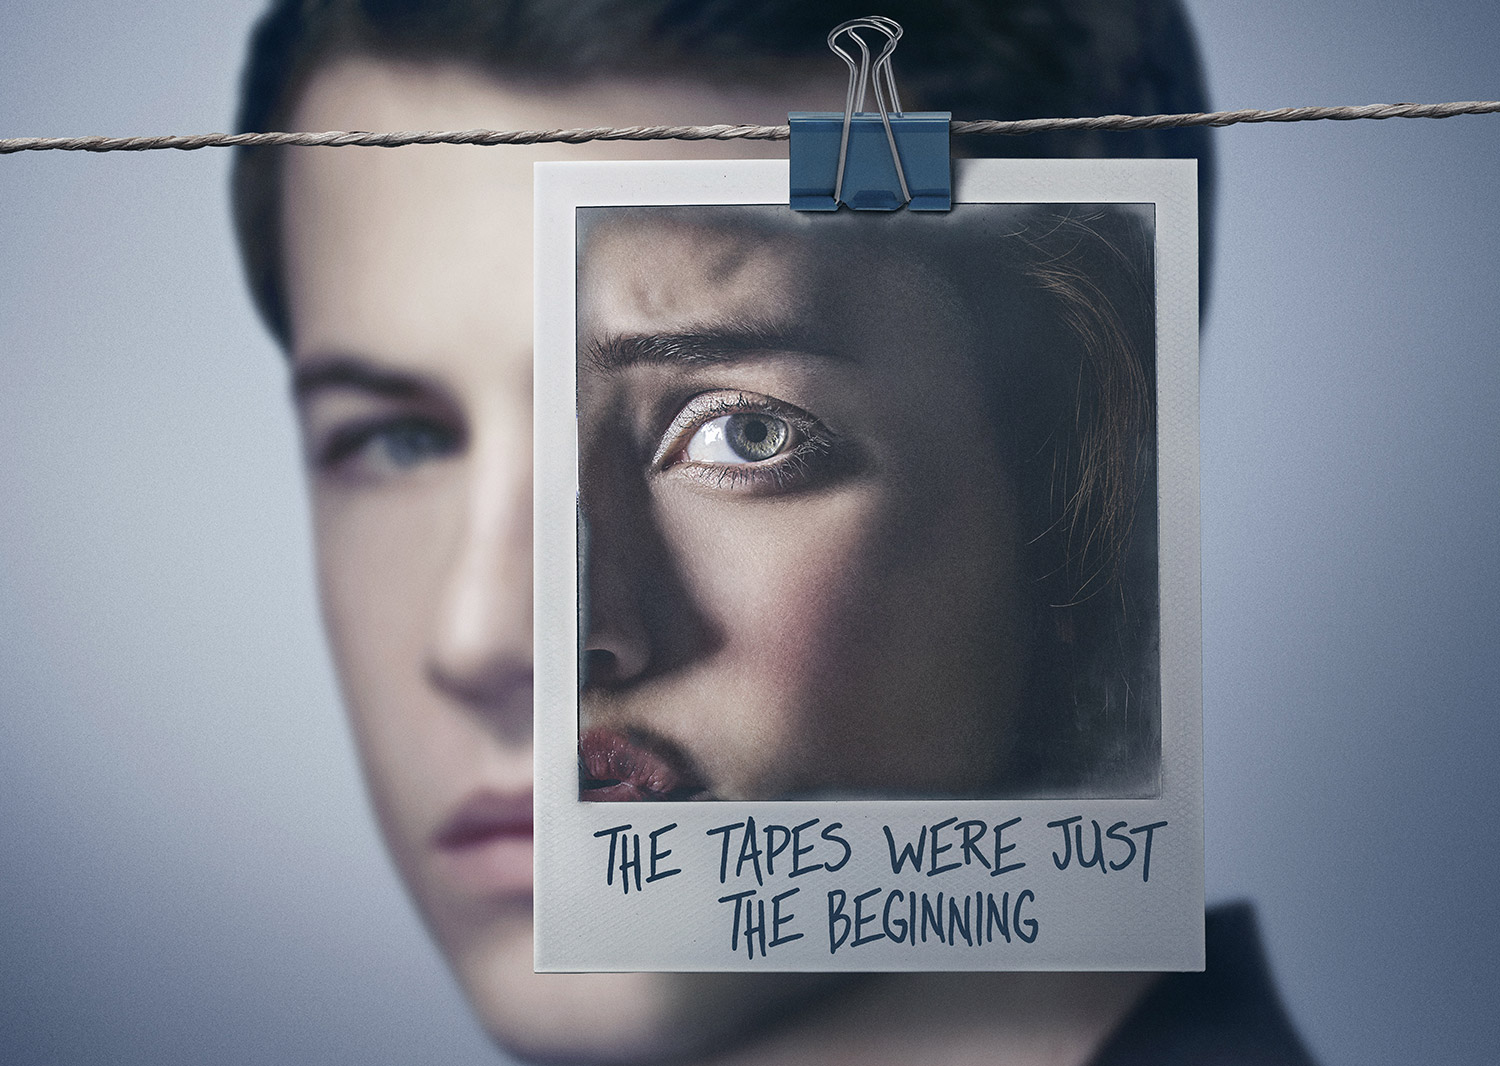 13 questions we have after watching 13 Reasons Why season 2